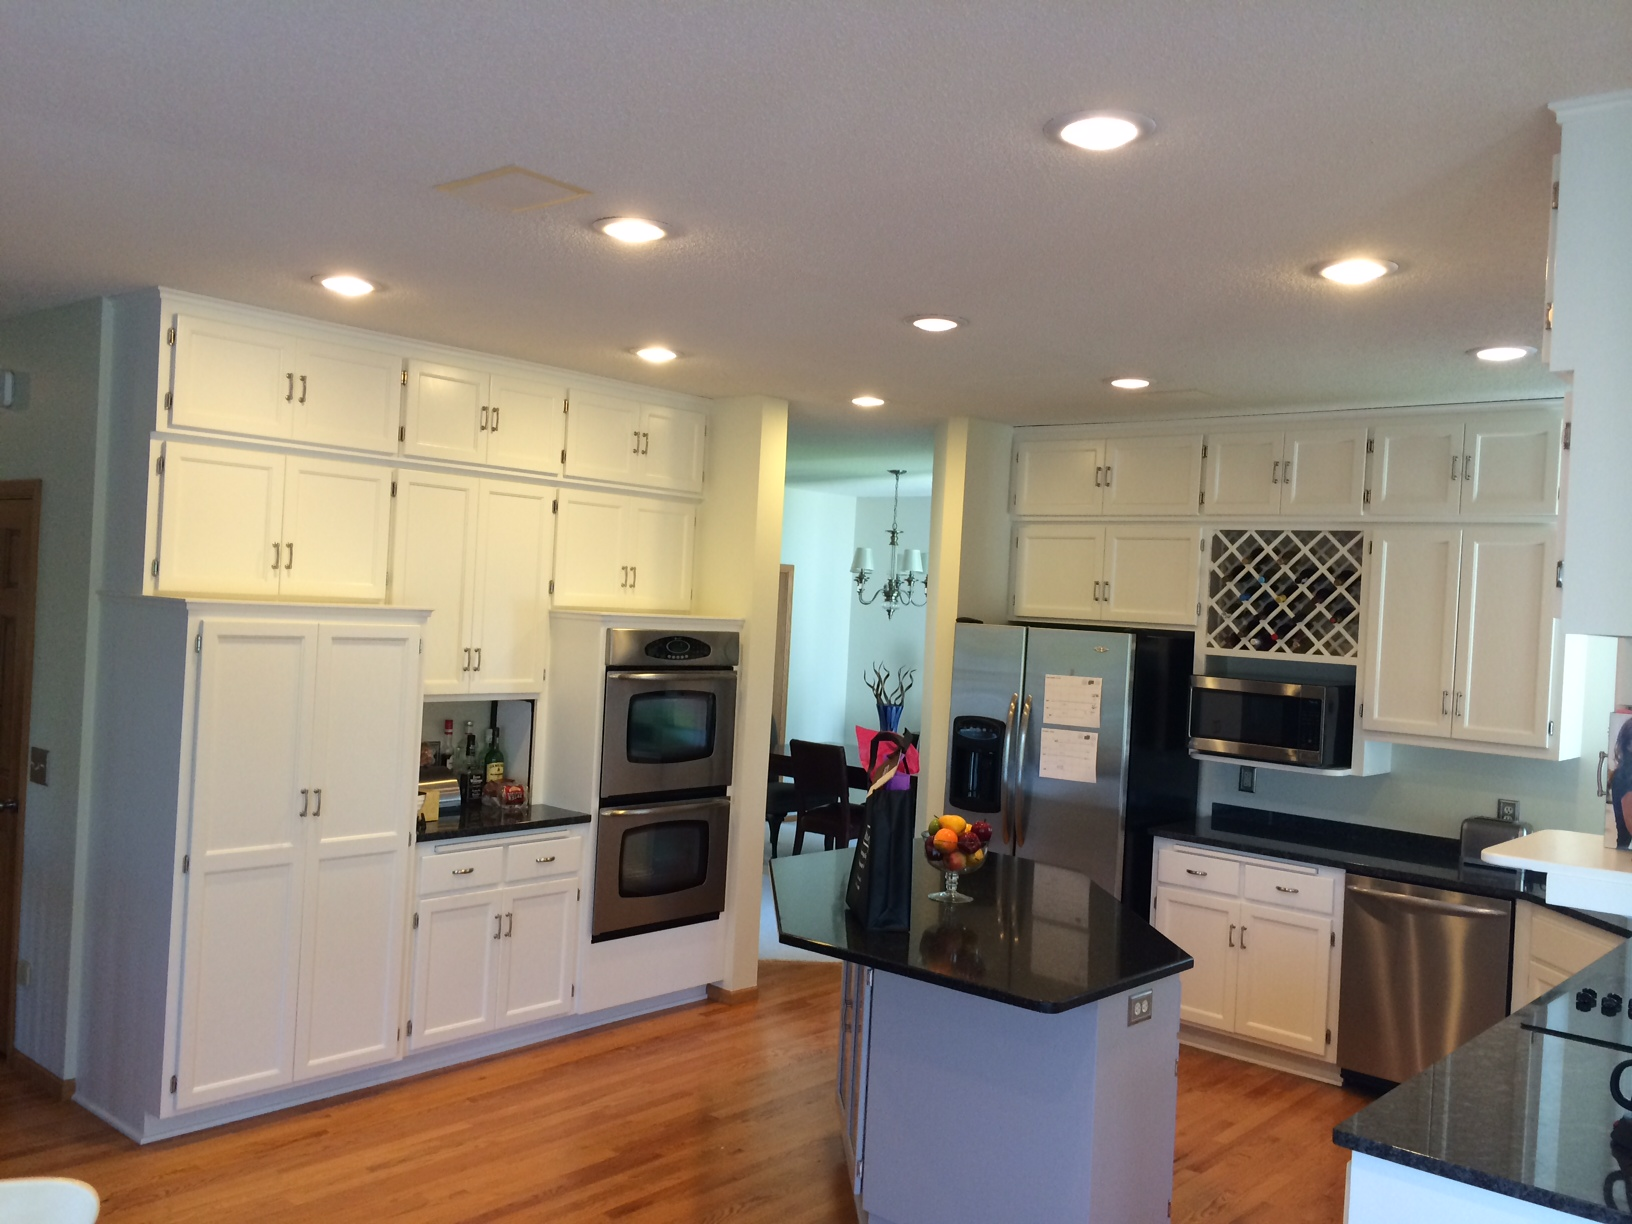 Matching Countertops With Cabinets Tips For Matching Your Countertops Cabinets And Flooring